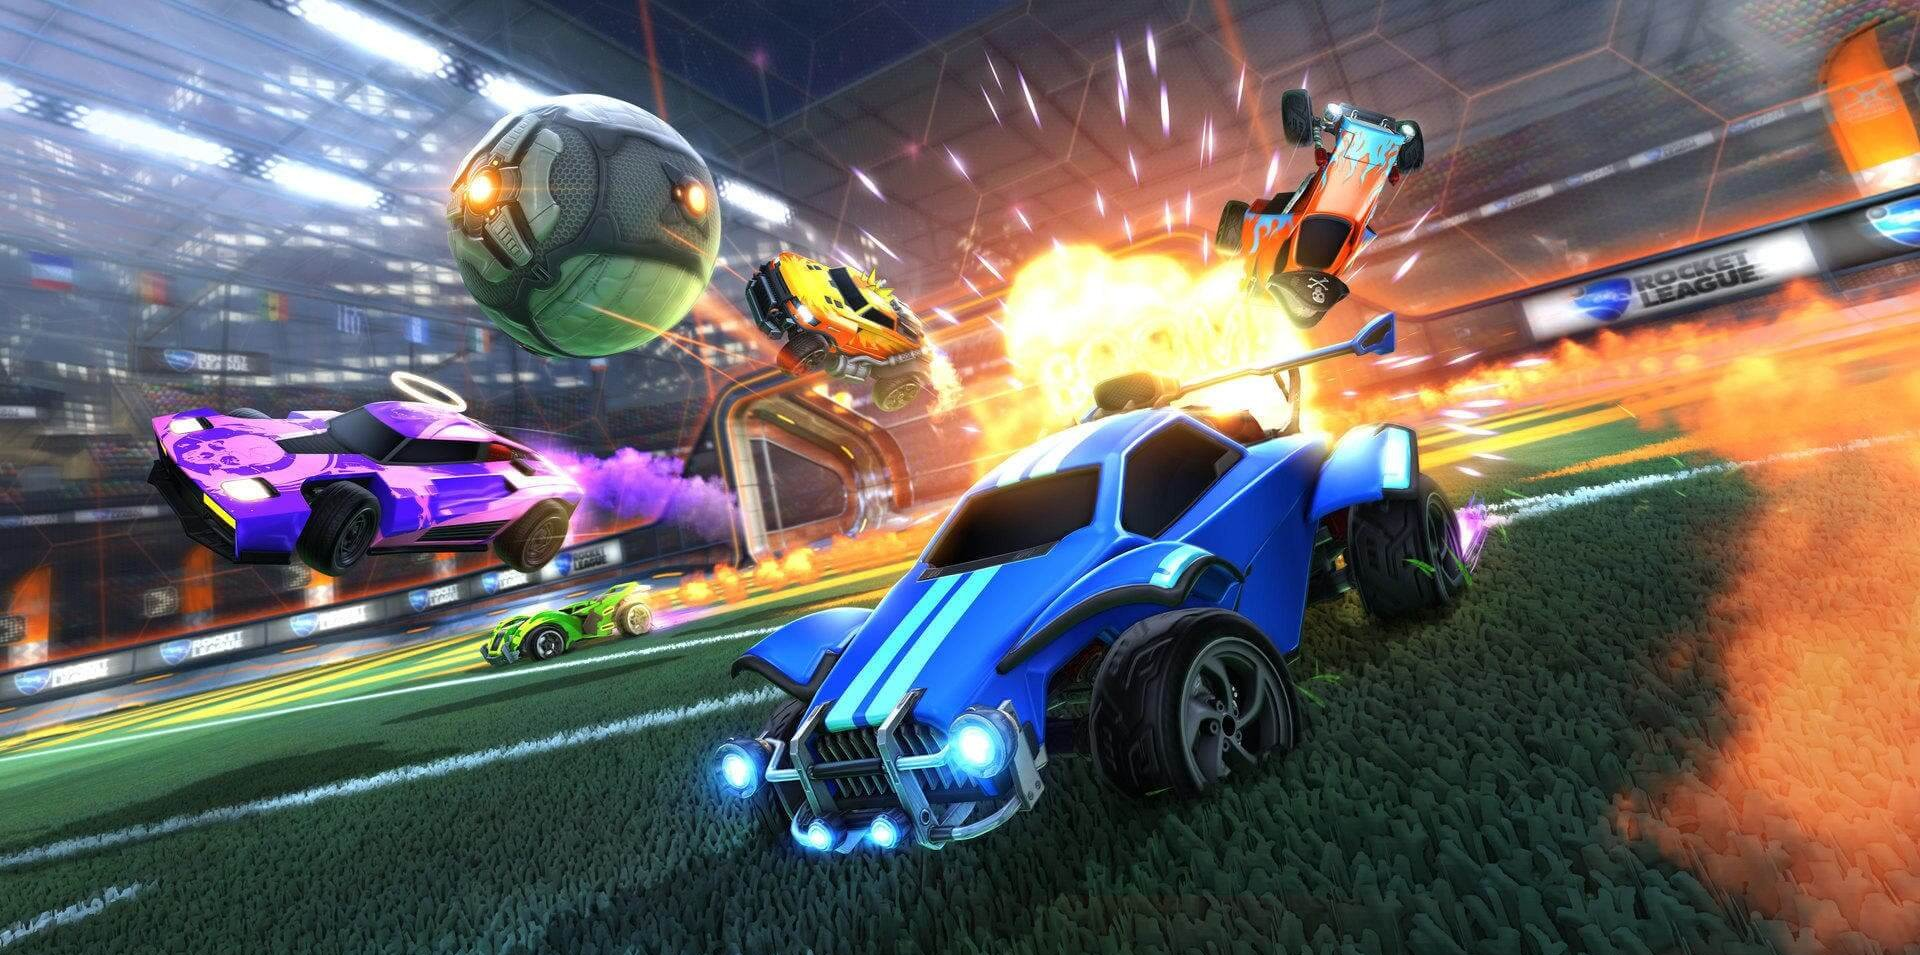 ¡Atentos, gamers!: ahora Rocket League es GRATIS